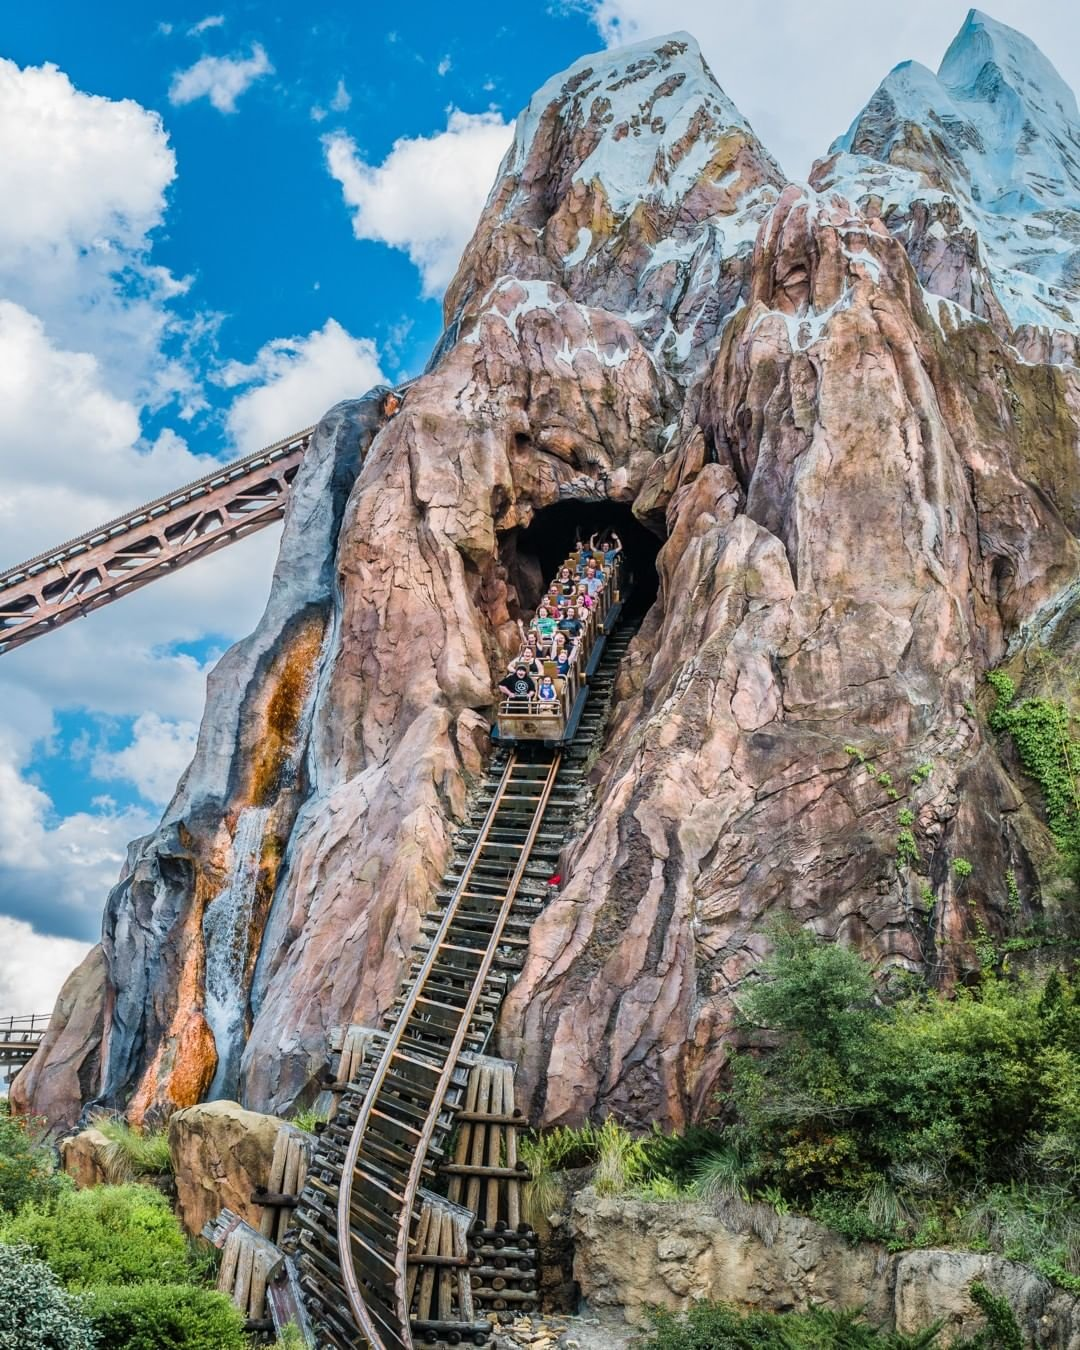 Riders enjoy Expedition Everest – Legend of the Forbidden Mountain®